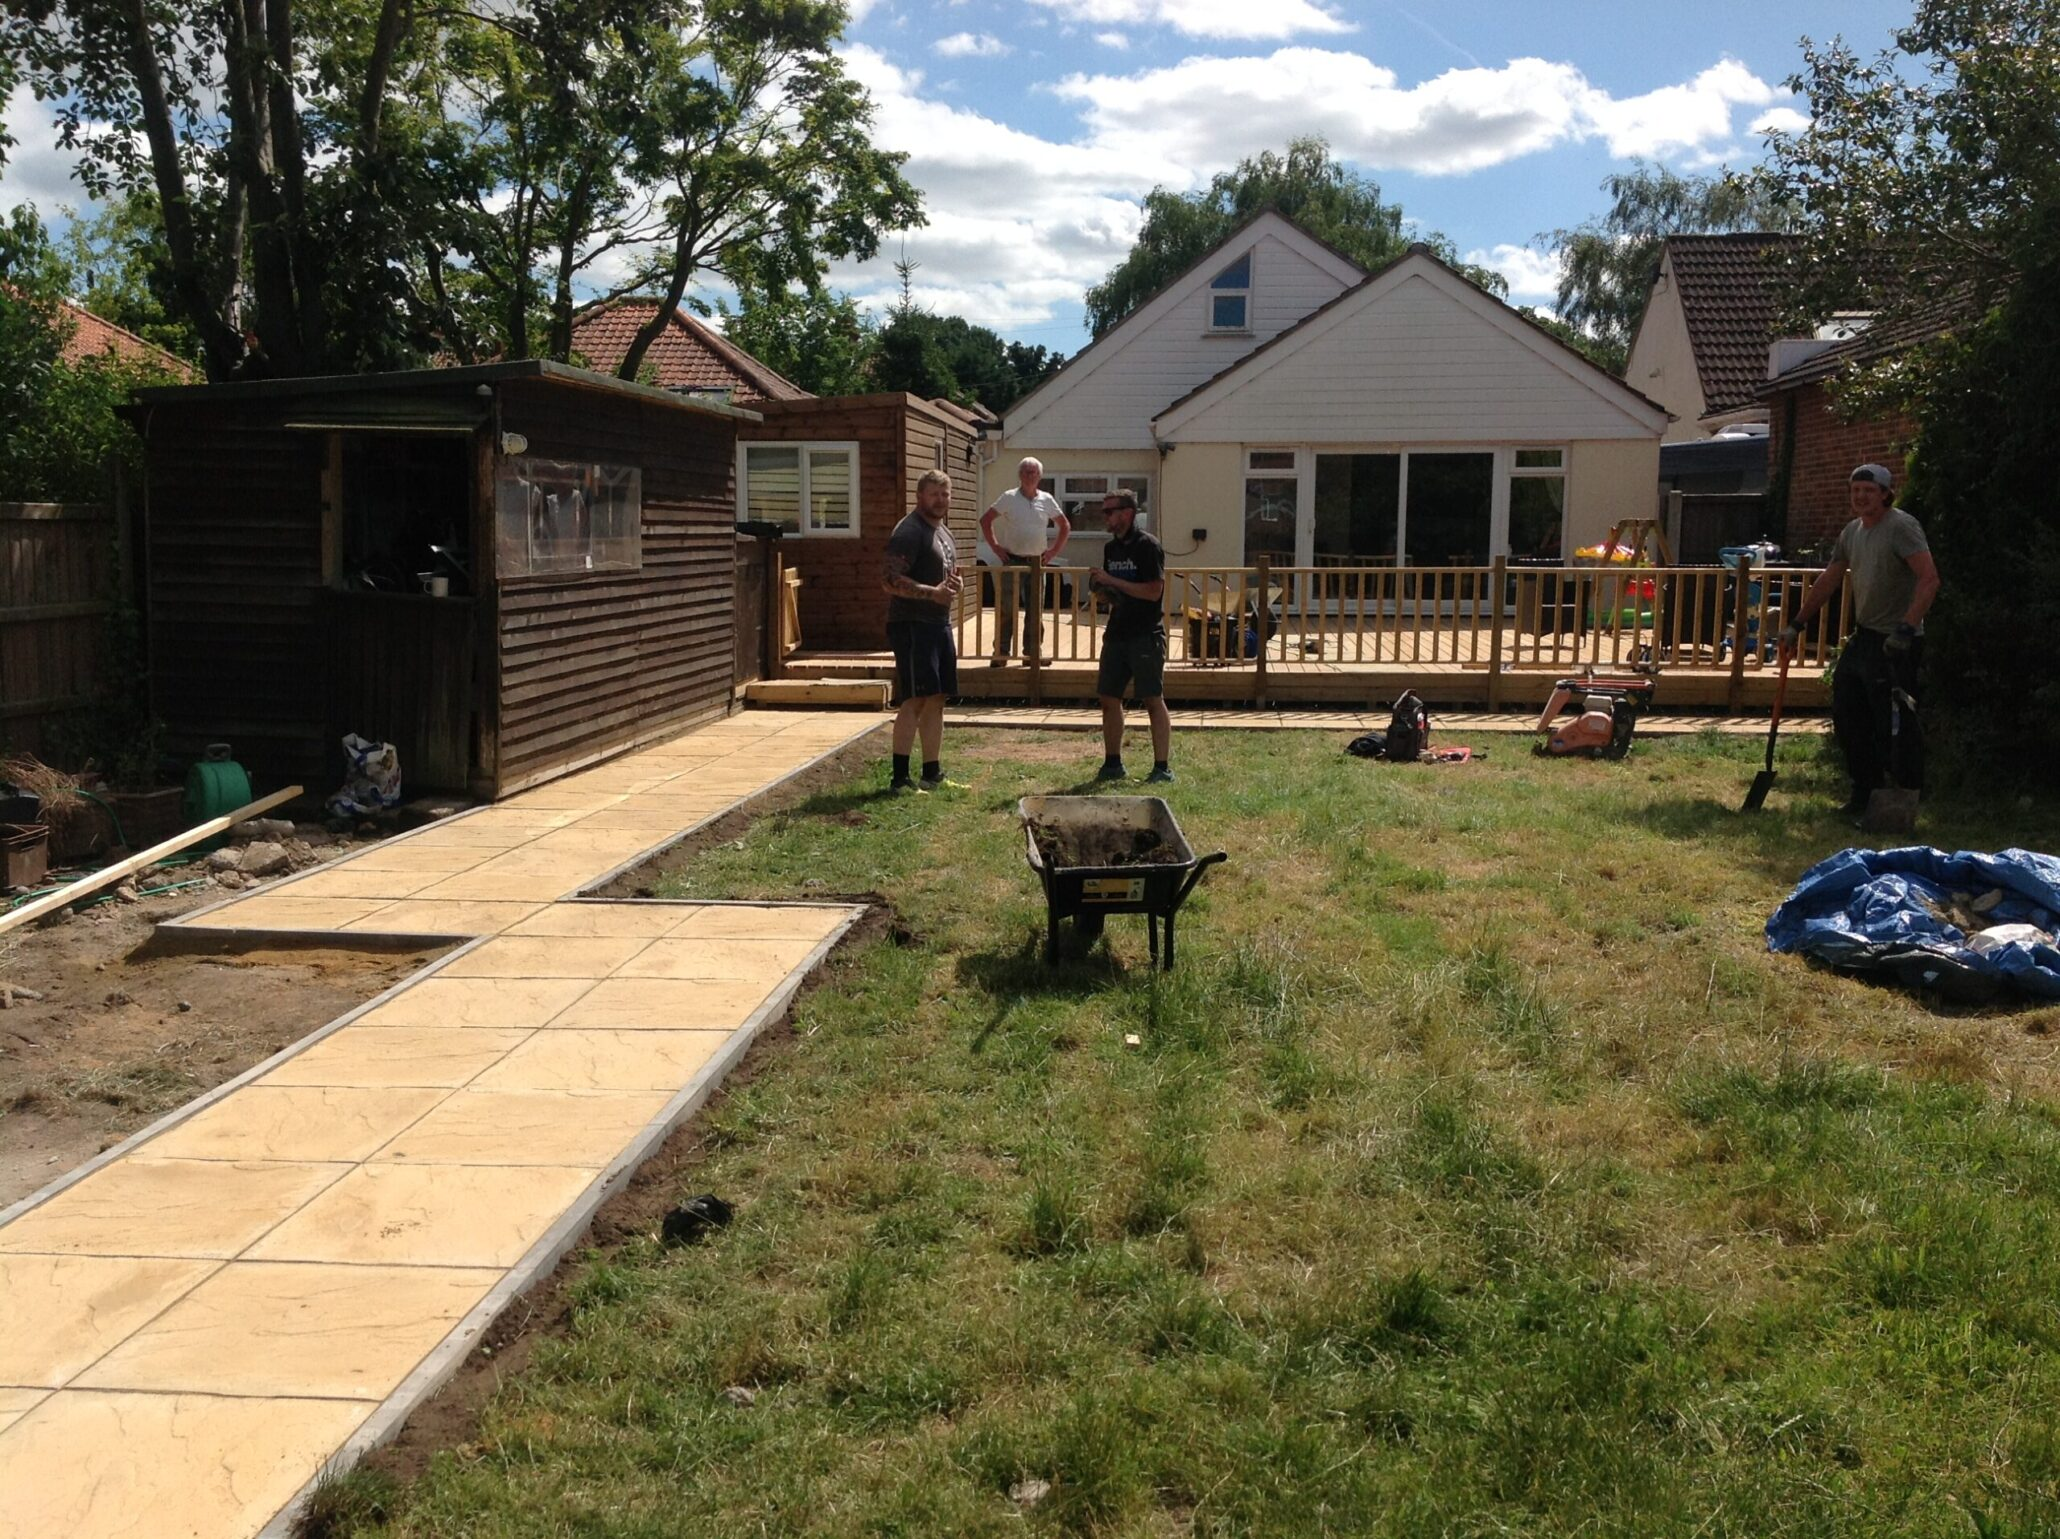 Path and large decking norwich decking co for Garden decking norwich